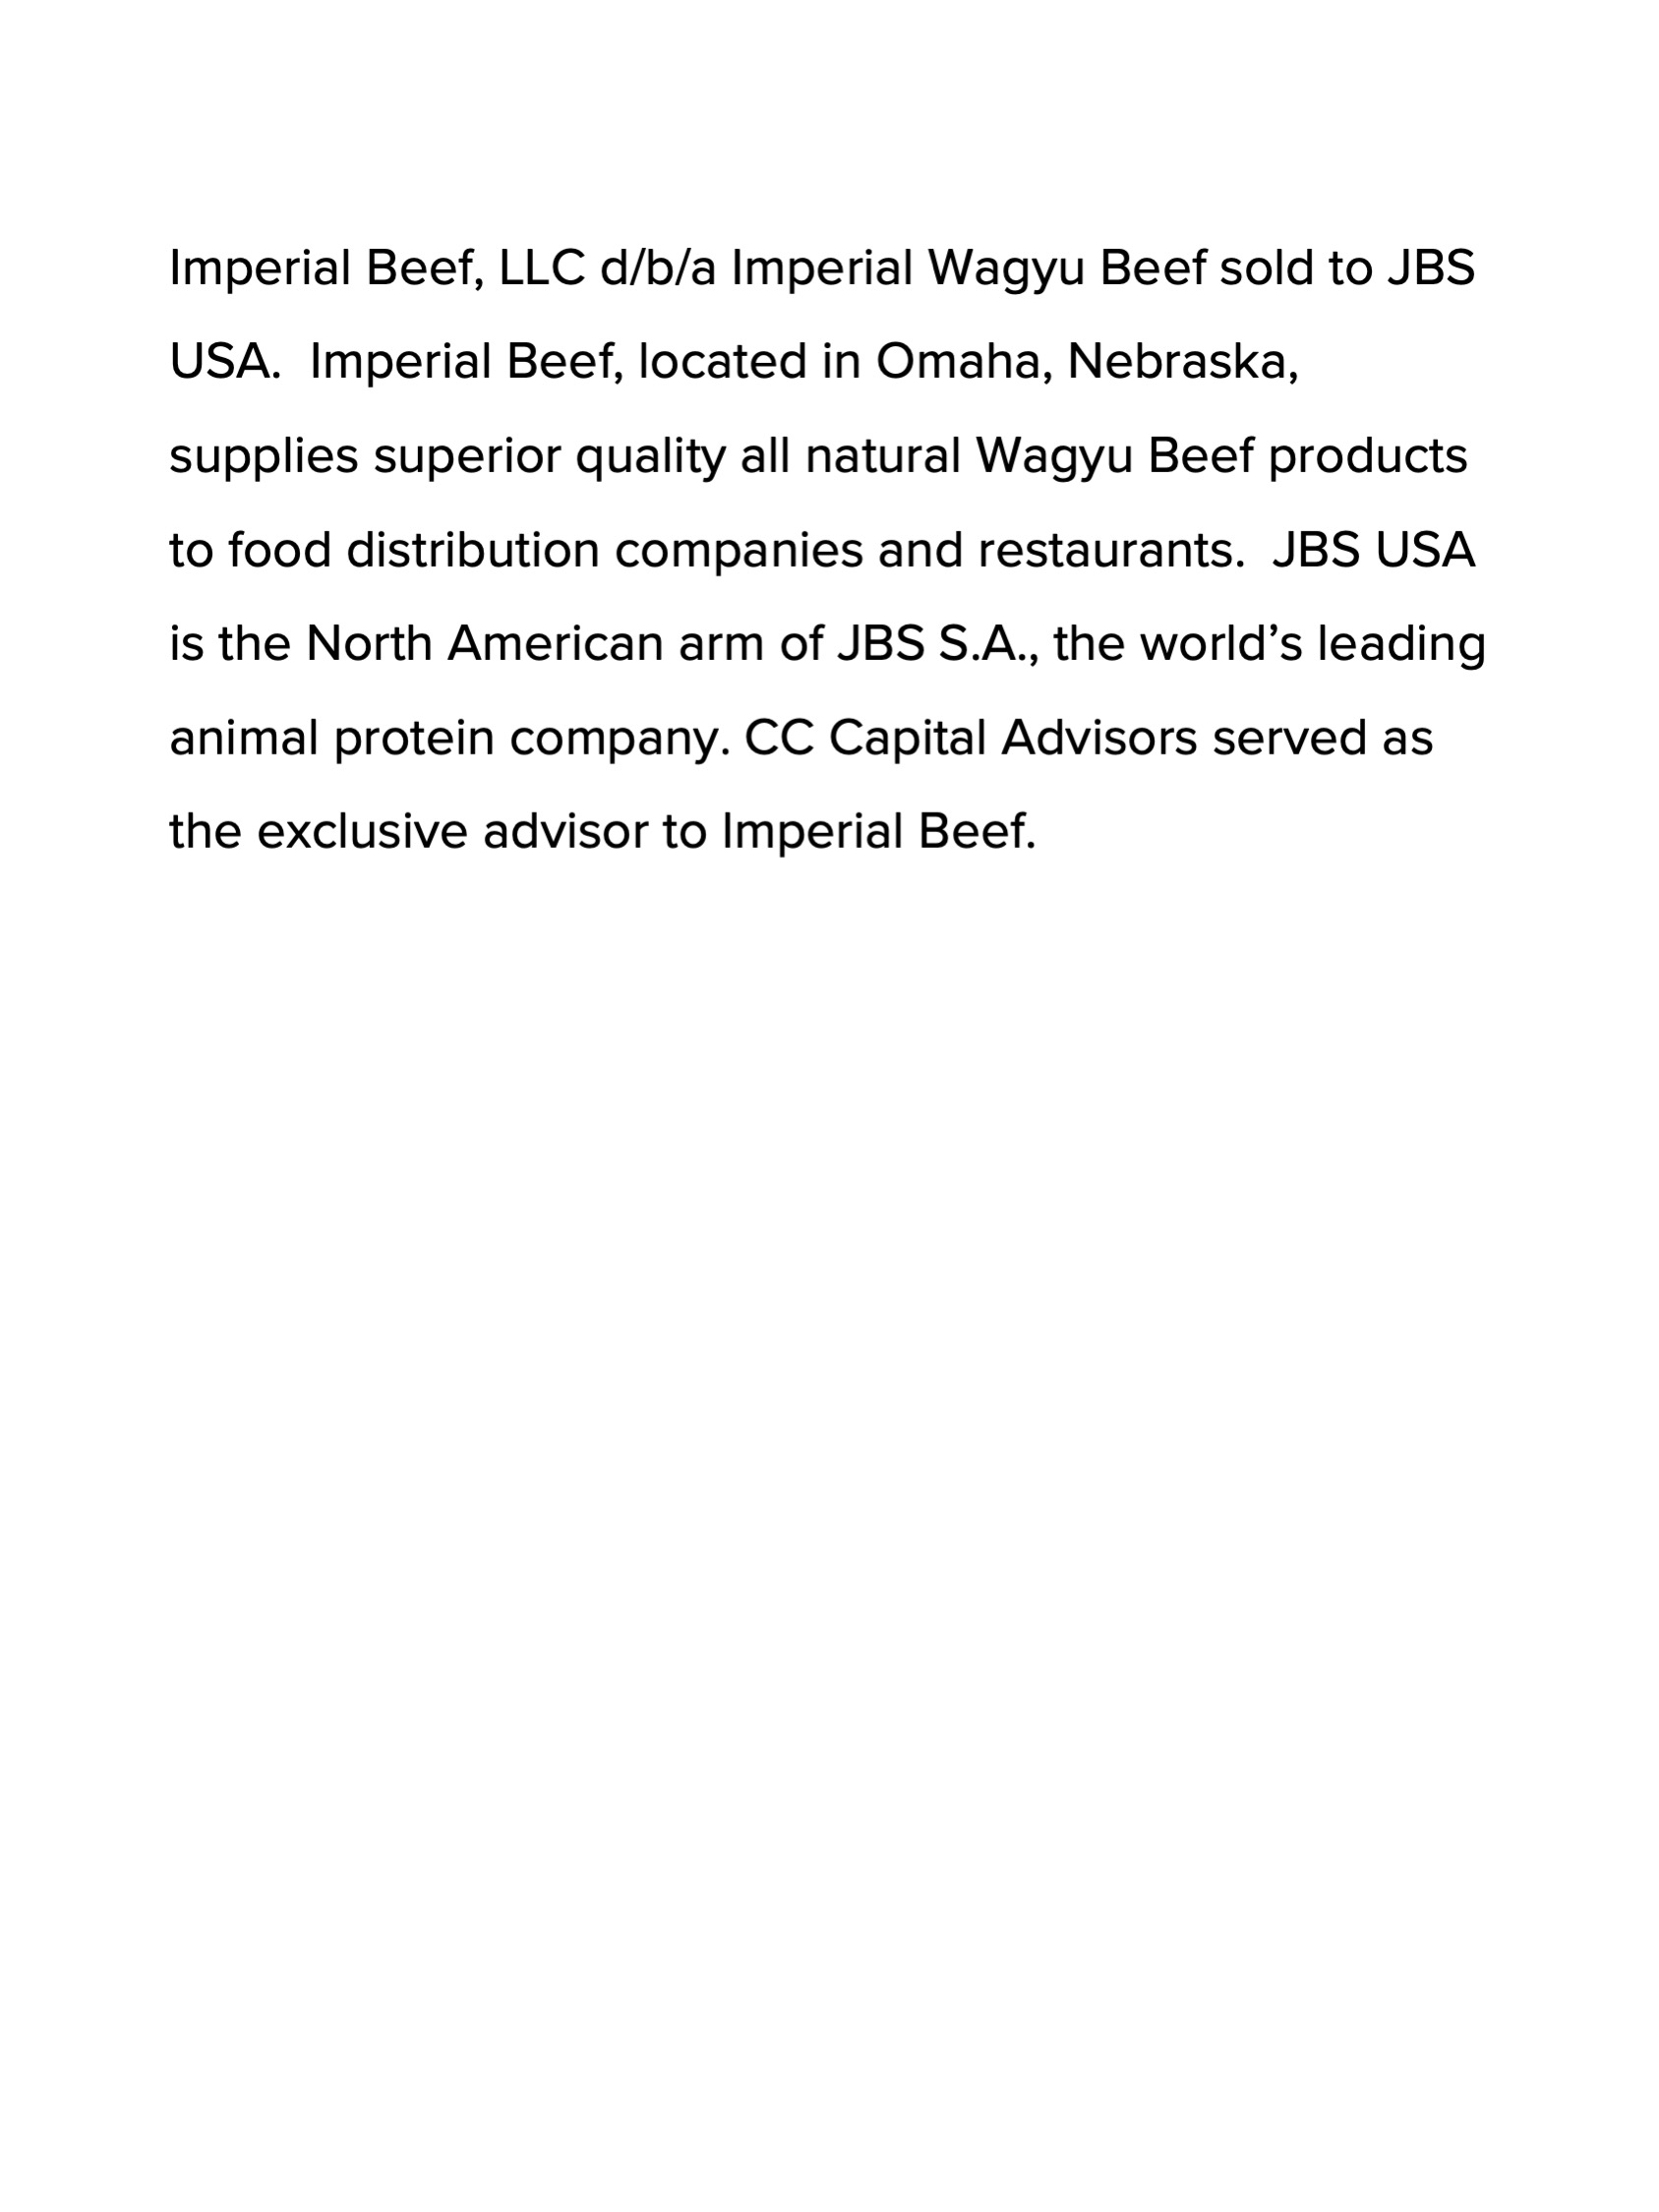 Imperial American Wagyu Beef